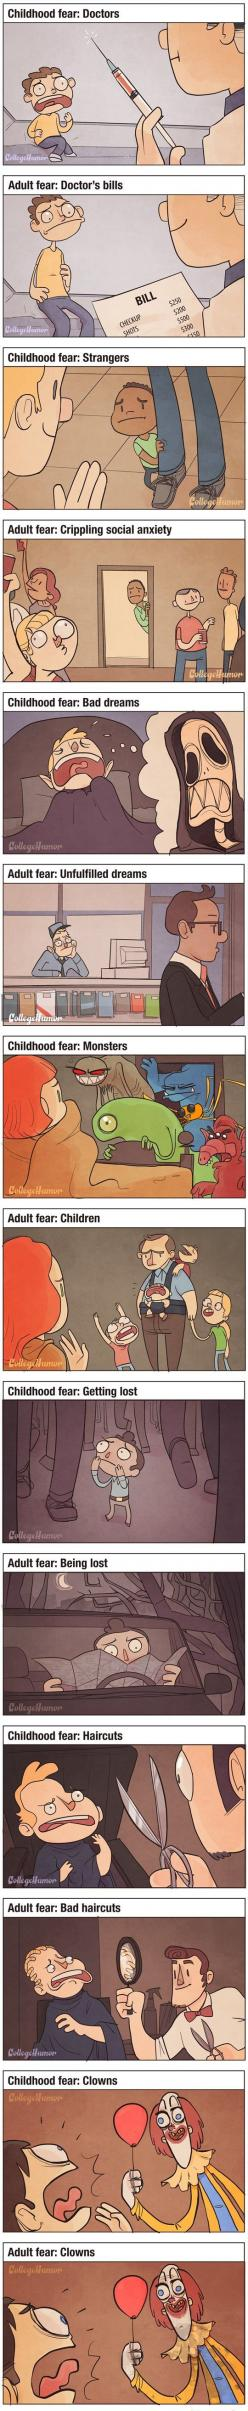 It's so true!!: Childhood Fears, Funny Random, Funny Stuff, Dang Clowns, So True Teenager Posts Funny, Creepy But True, Adult Humour Quotes, Child Fears Vs Adult Fears, It S True